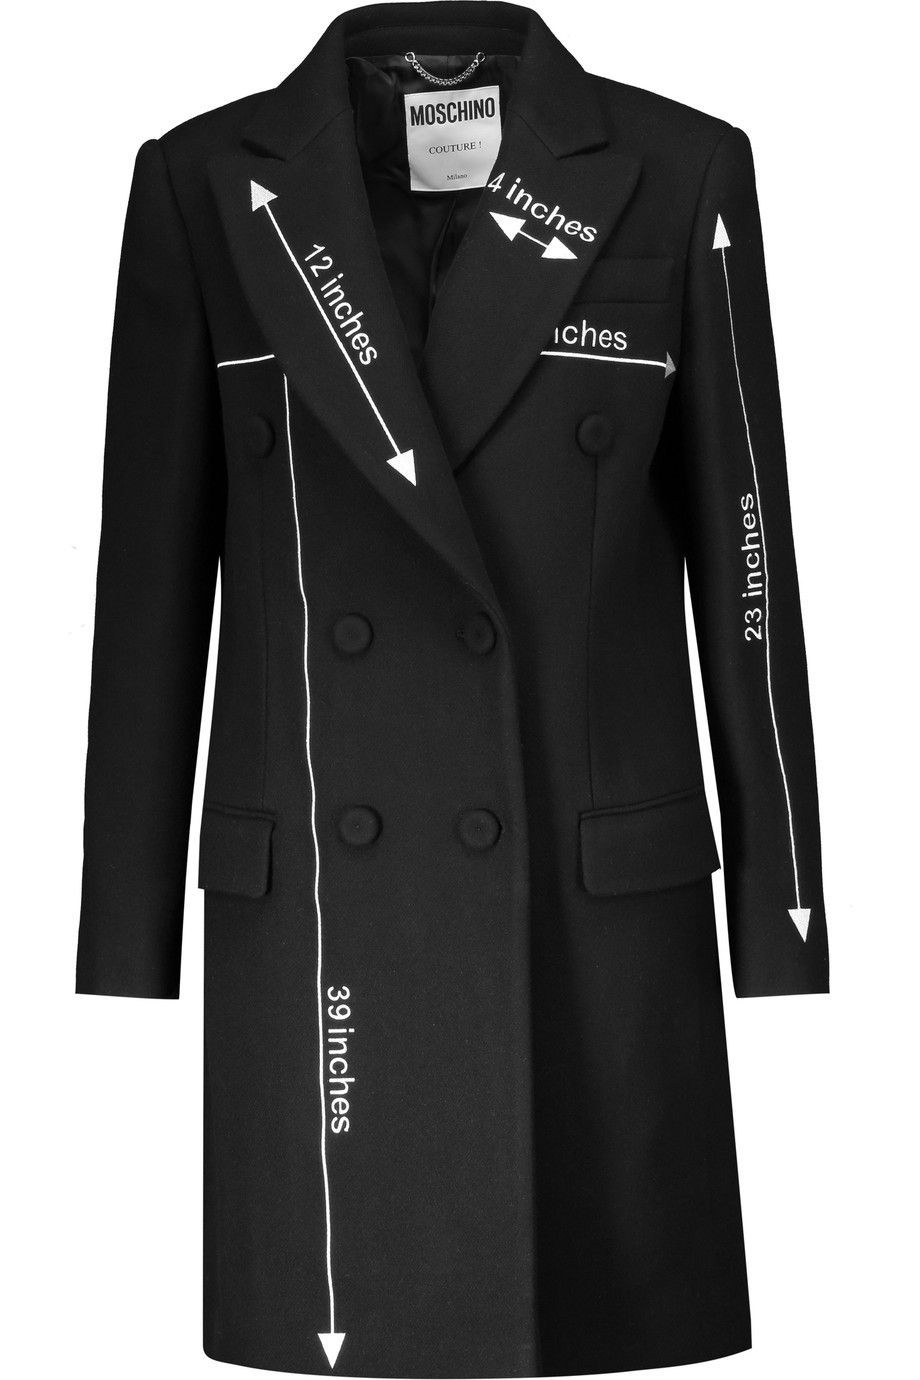 MOSCHINO Embroidered Wool-Blend Coat. #moschino #cloth #coat